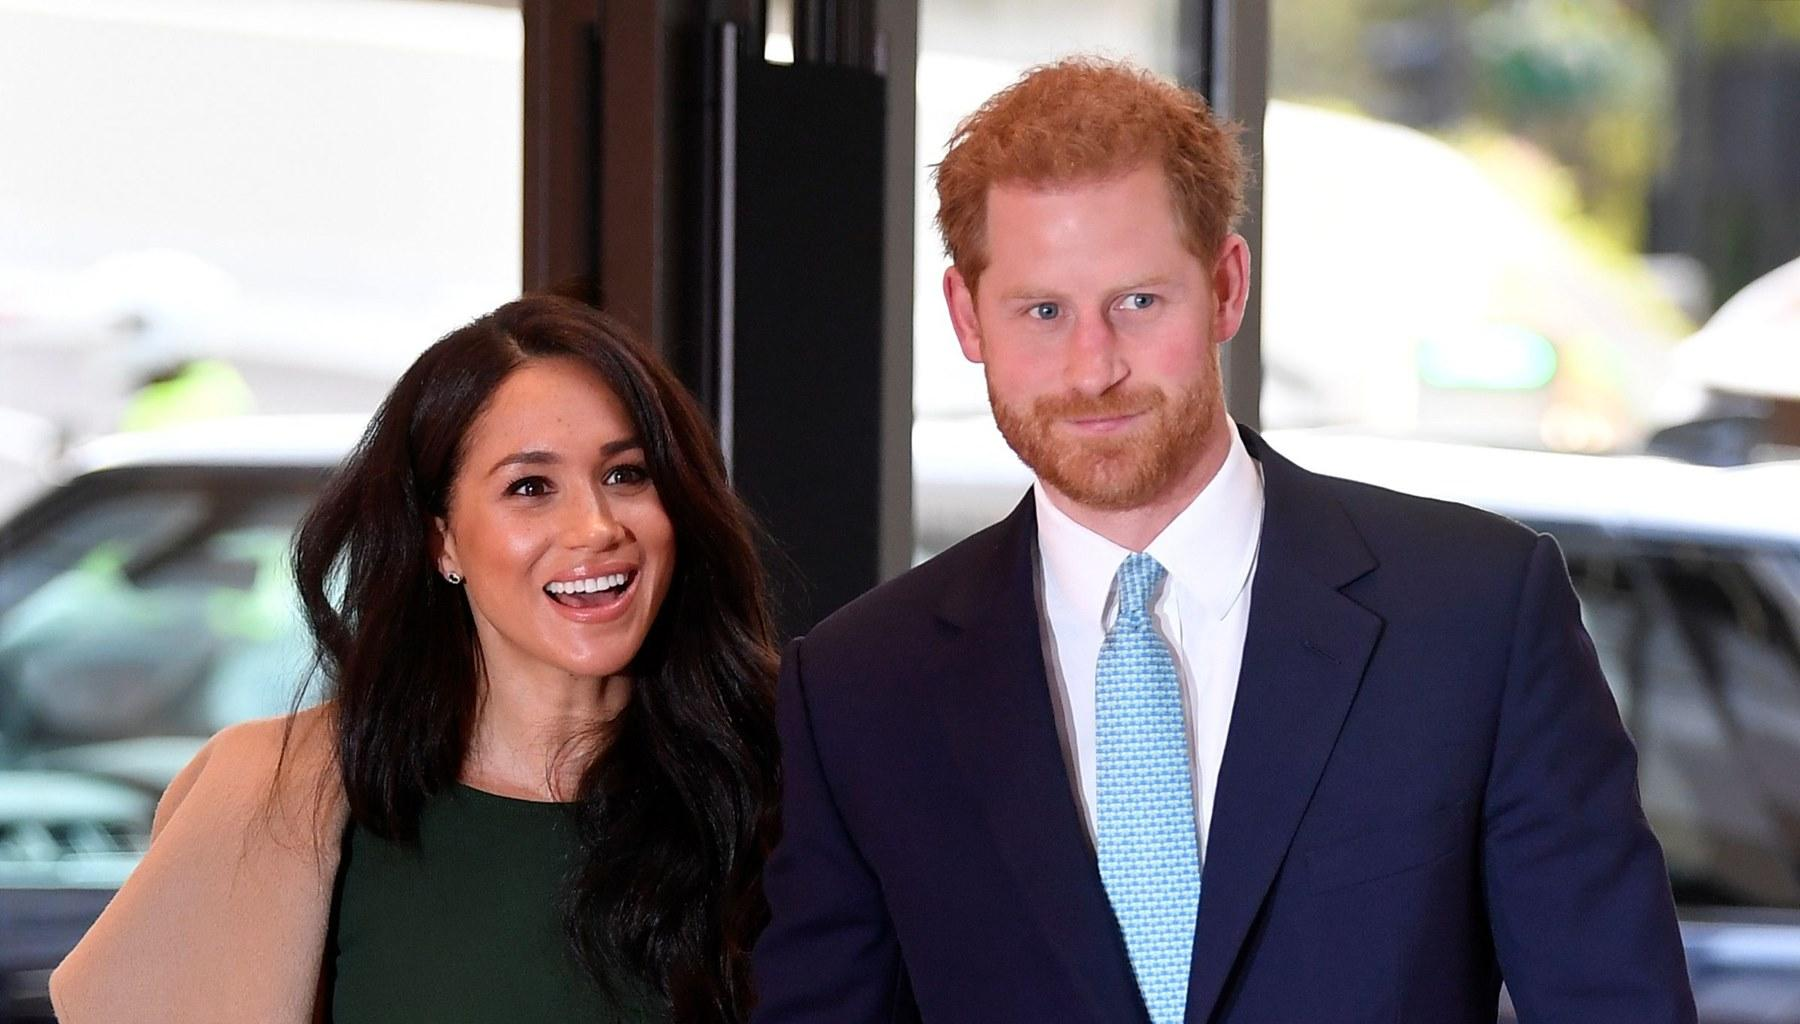 Prince Harry And Meghan Markle Are Being Offered This Impressive Deal By The Queen To Come Back To London With Baby Archie